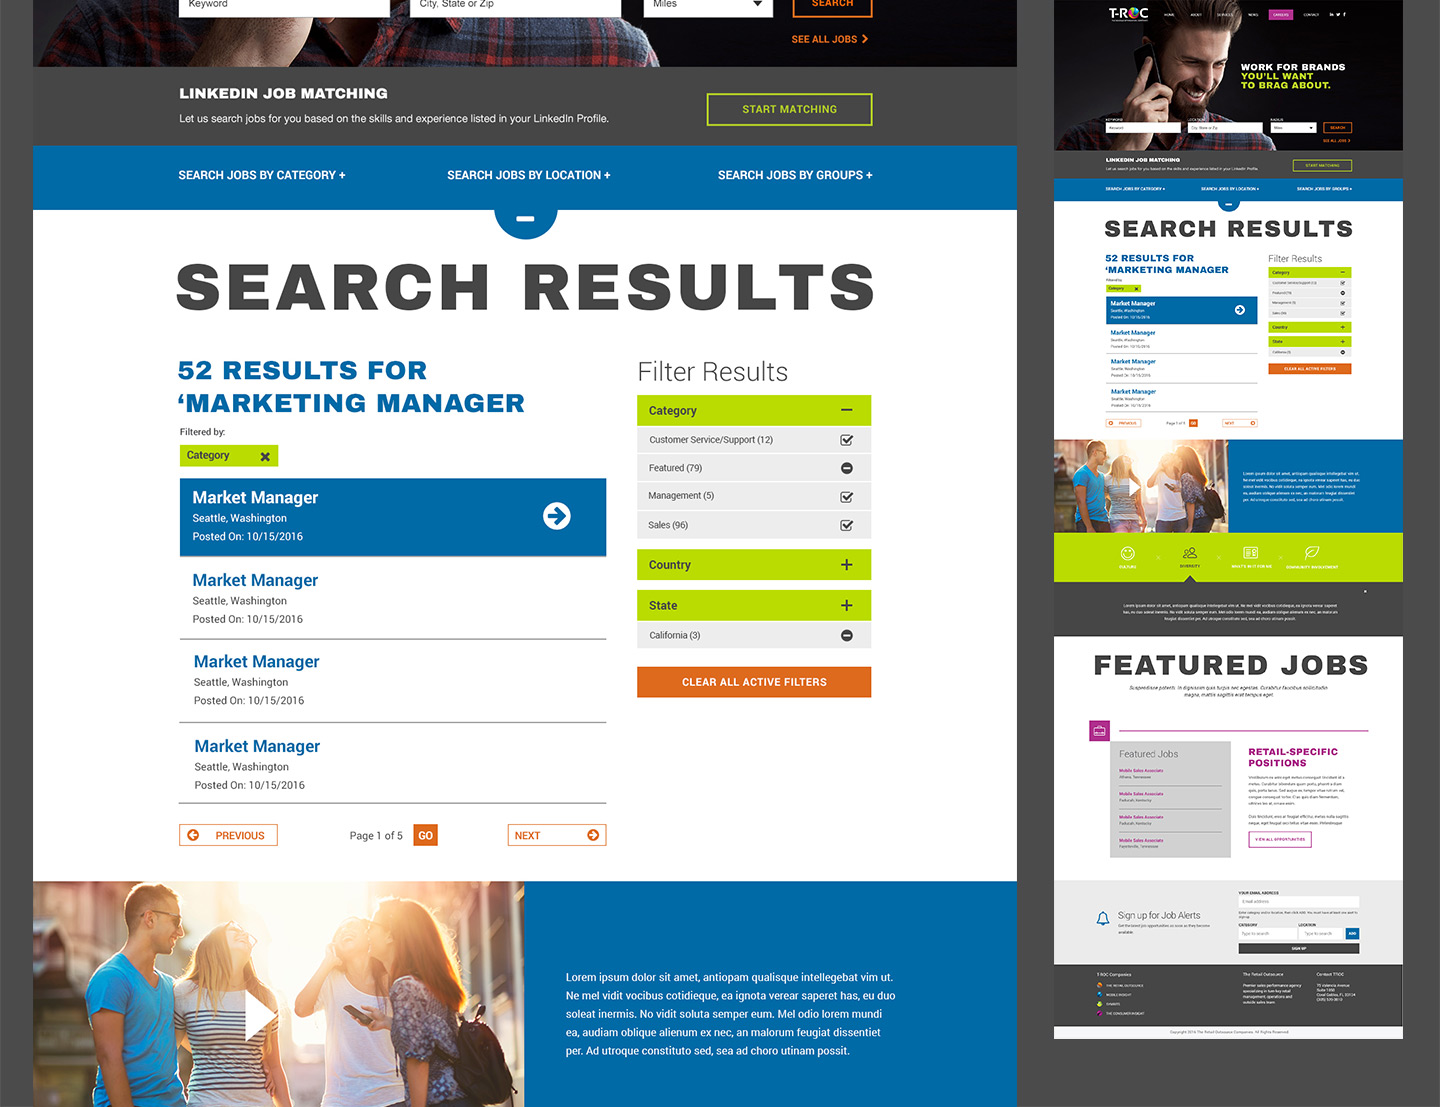 Job search features expanded